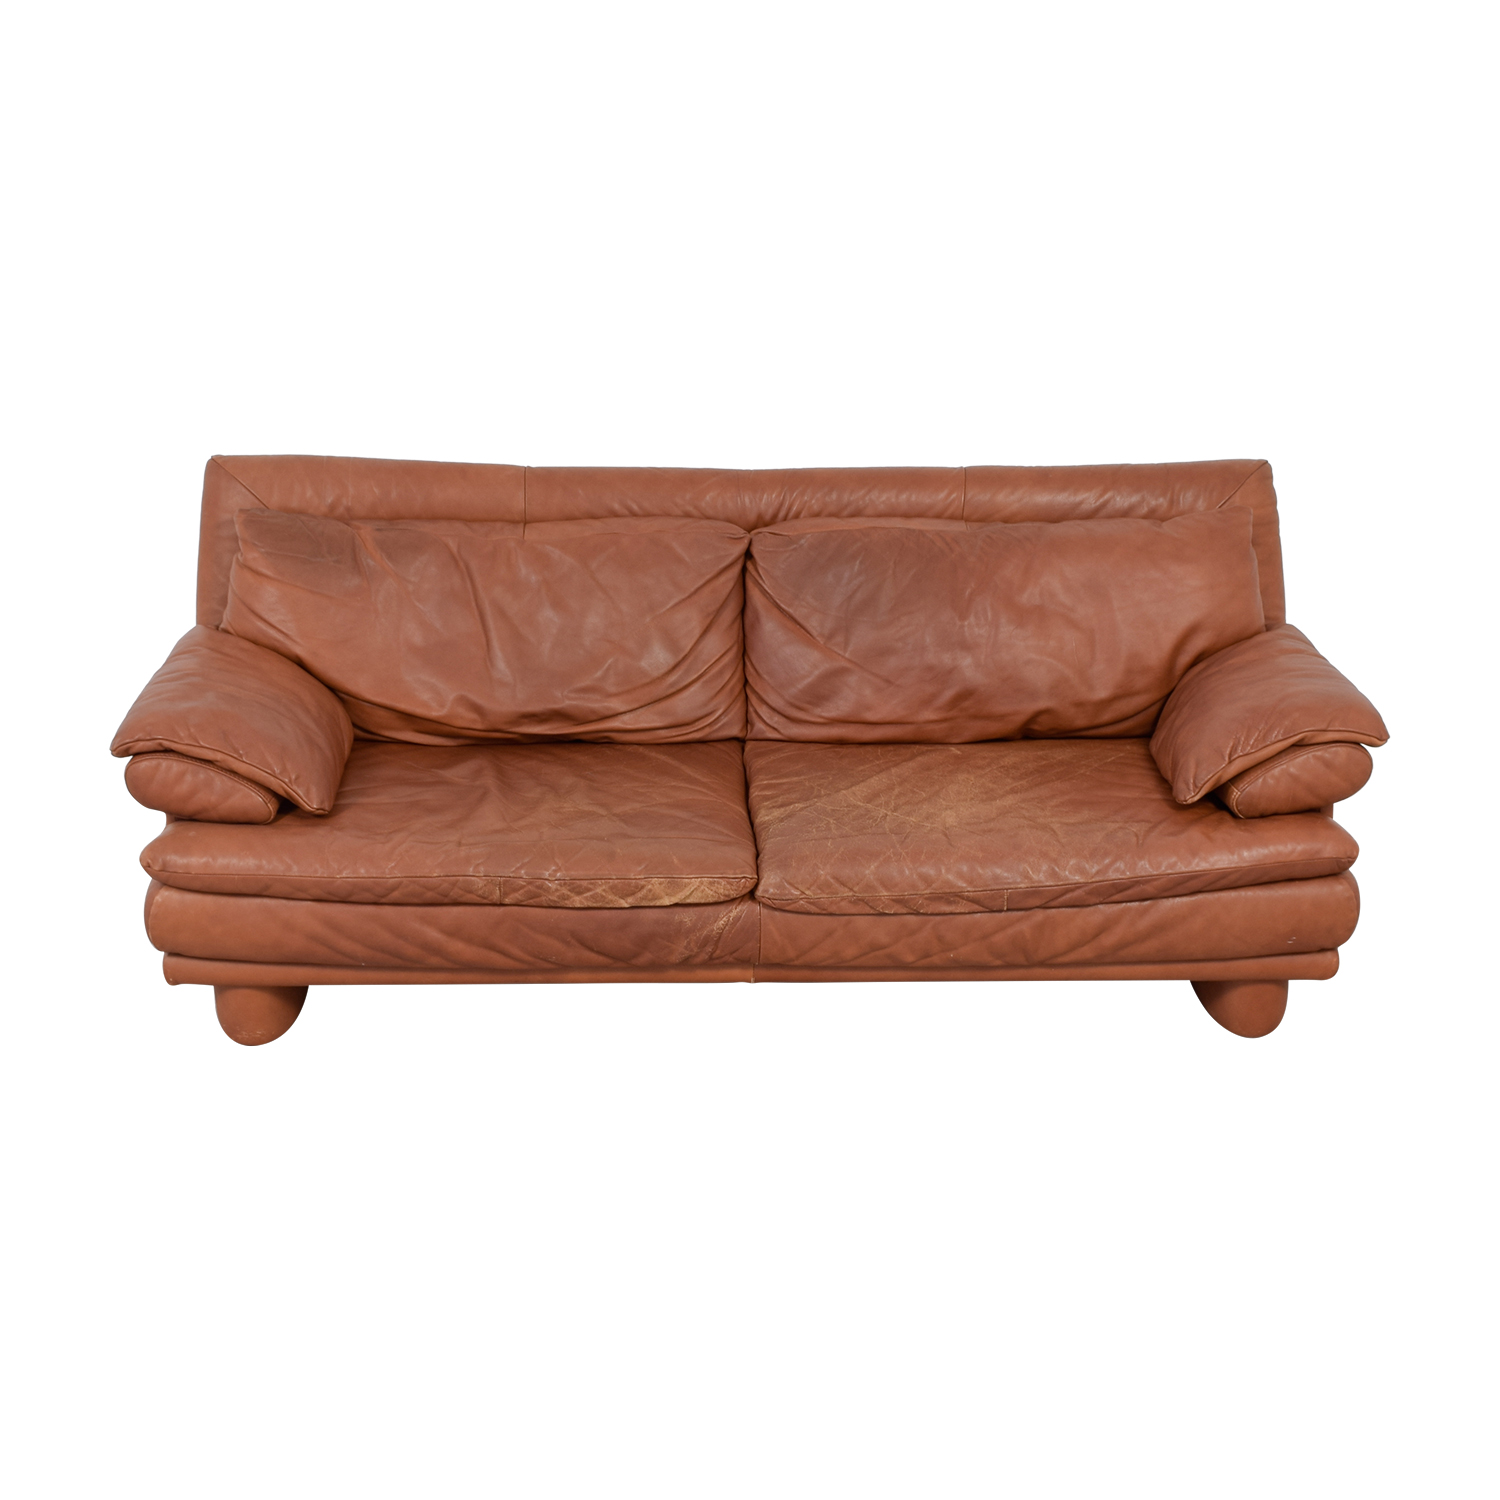 Maurice Villency Maurice Villency Brown Leather Sofa on sale